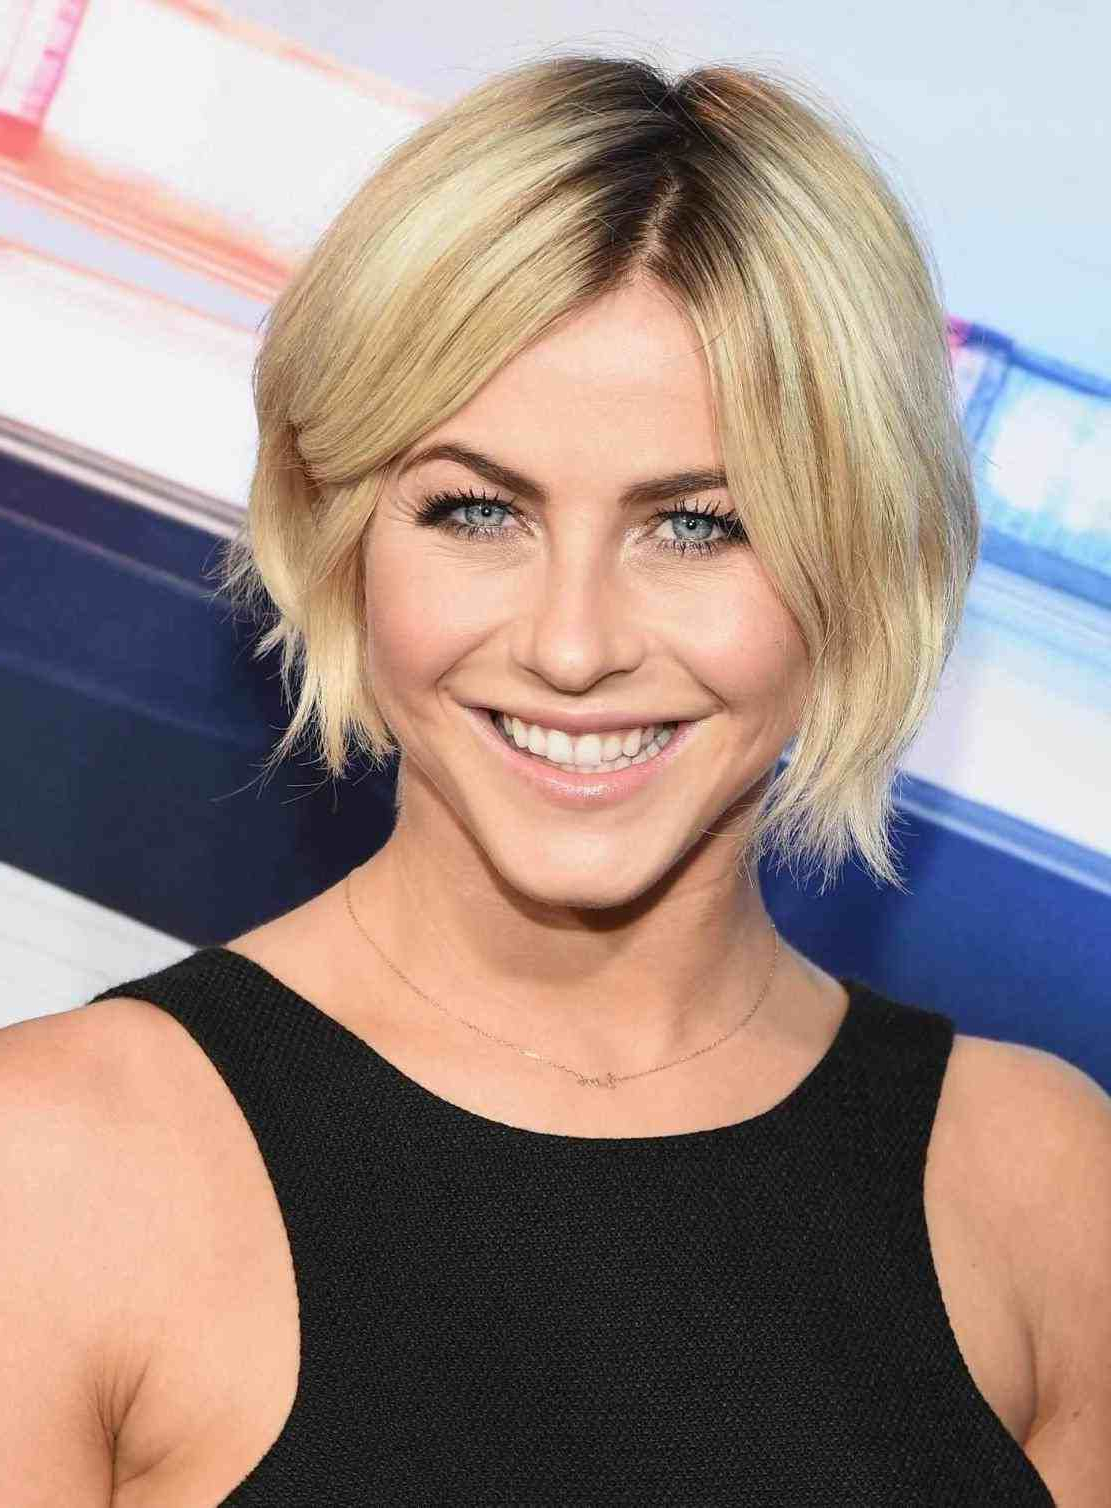 Hairstyles That Make You Look Younger Before And After | Hair Pertaining To Short Haircuts That Make You Look Younger (View 9 of 25)